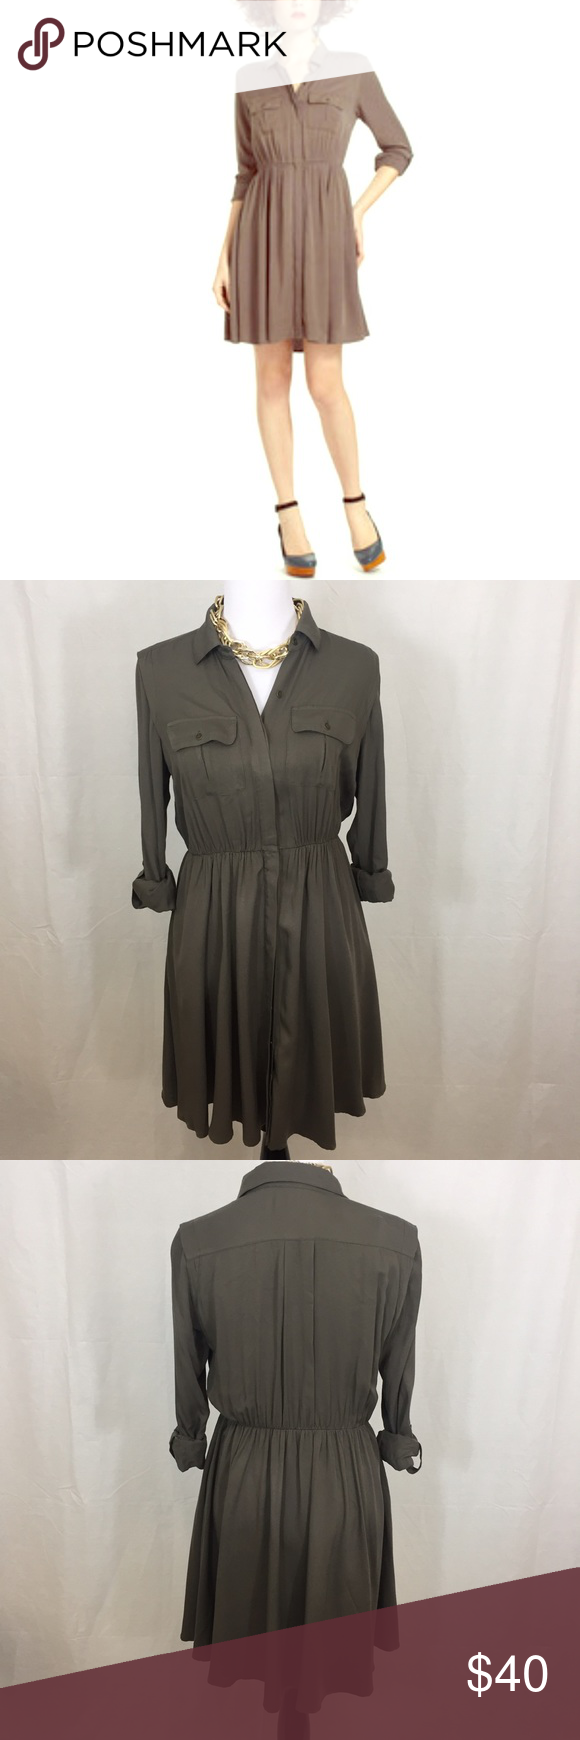 Anthro-Maeve Dakota Dress Beautiful moss colored dress. In excellent pre owned condition. No flaws. Size small. Could fit Medium. Stretch waist. Buttons down in front. Anthropologie Dresses